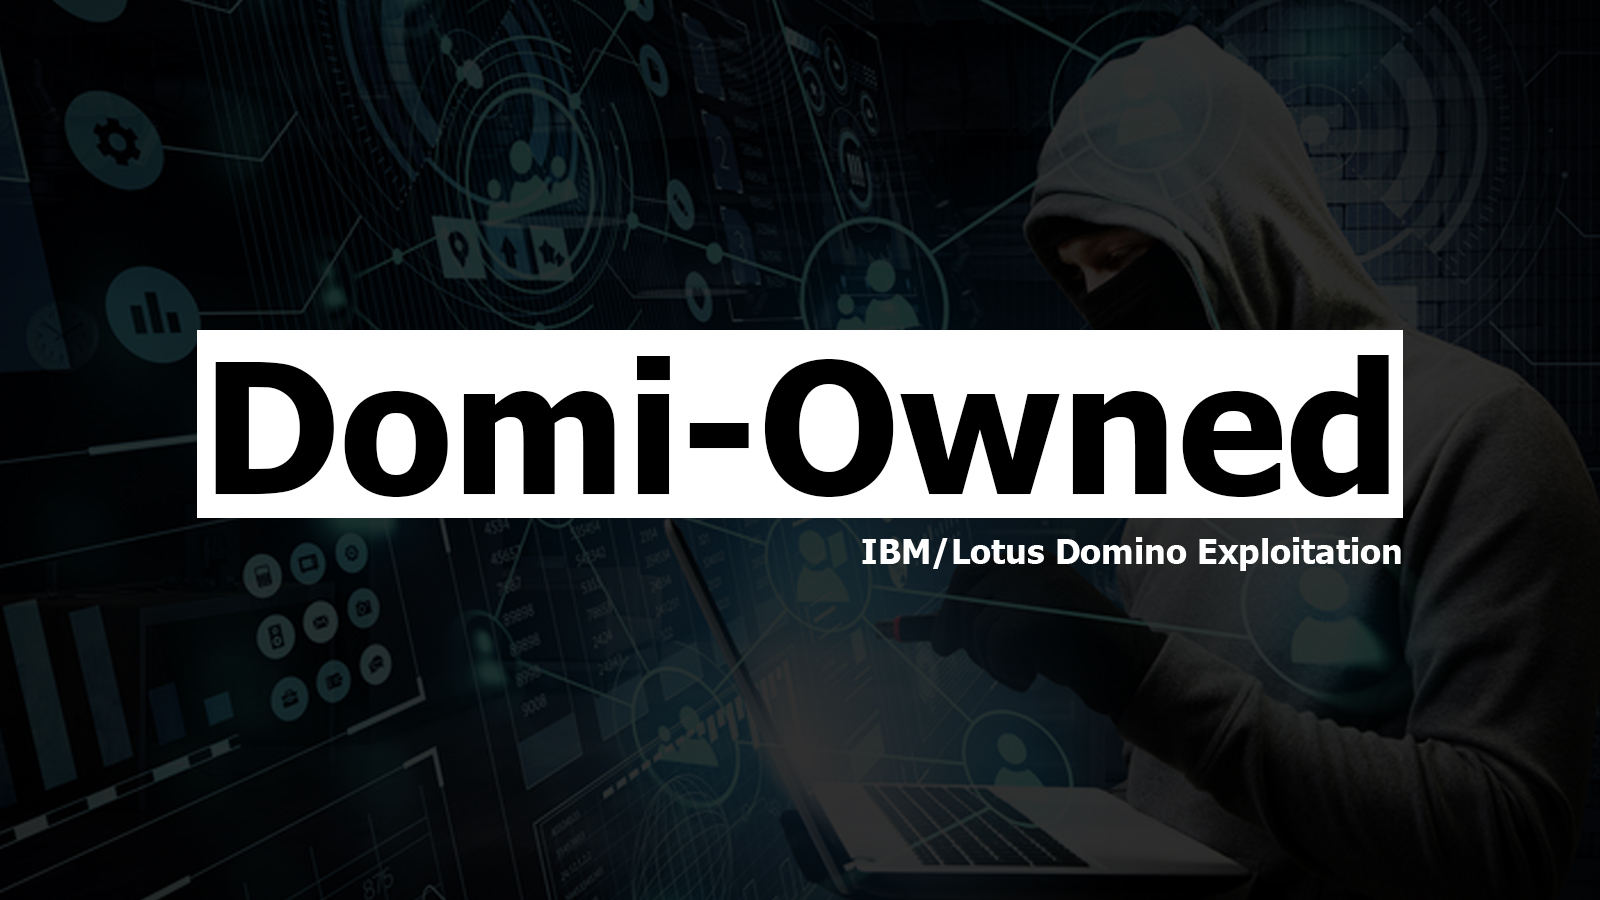 Domi-Owned - IBM/Lotus Domino Exploitation